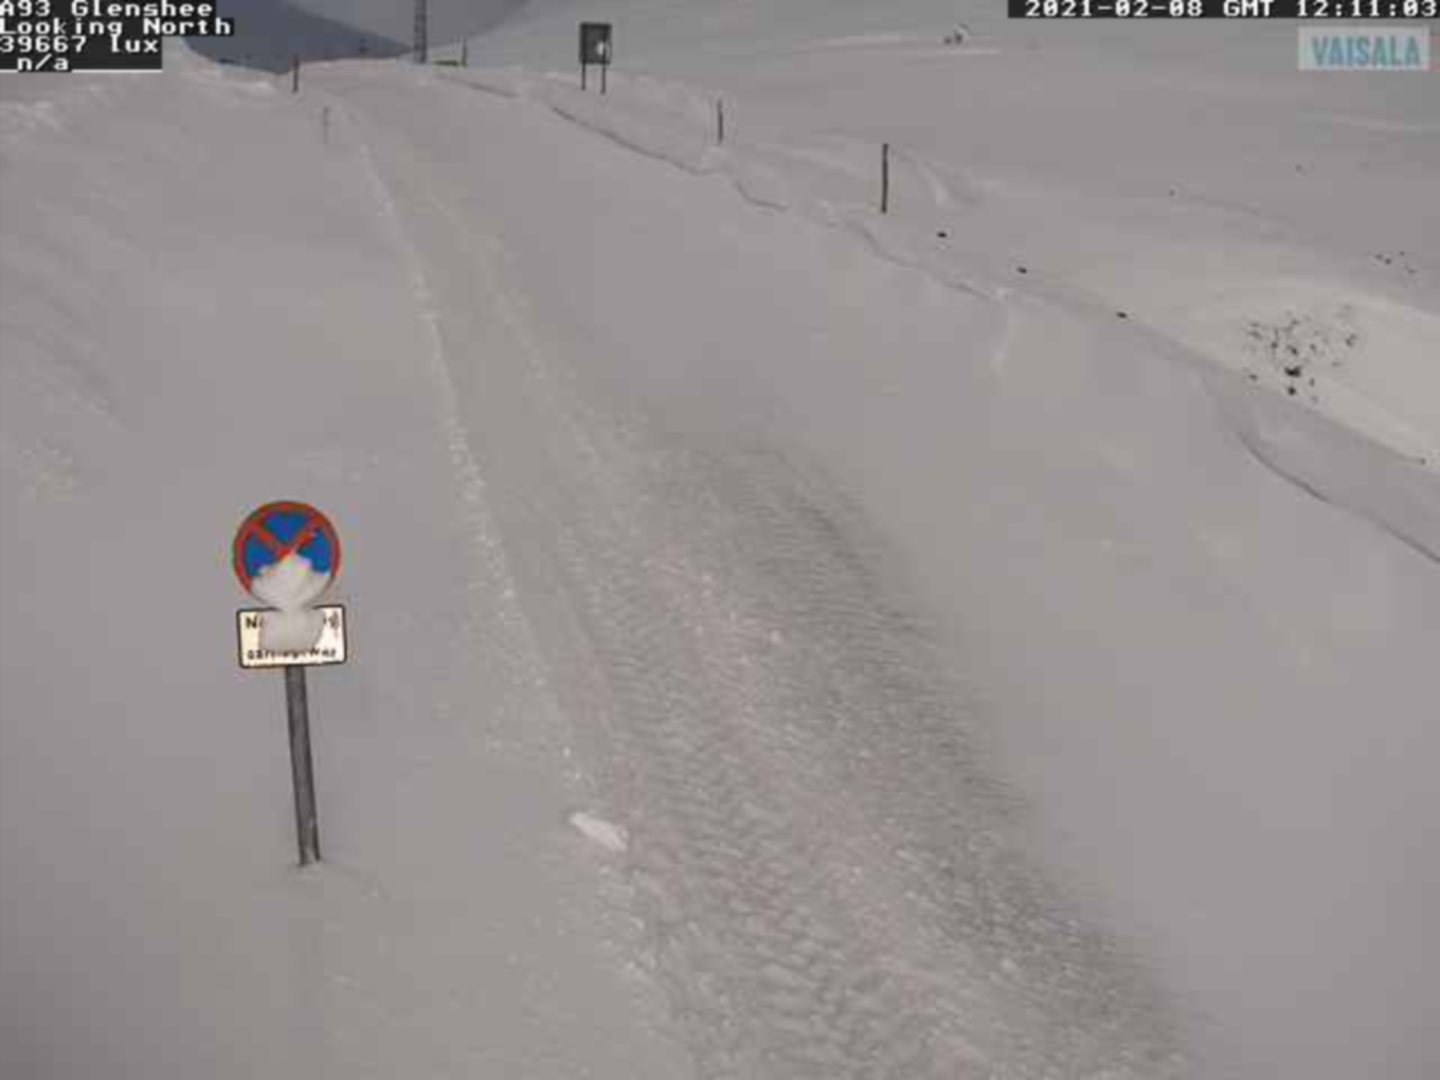 The A93 at Glenshee northbound.